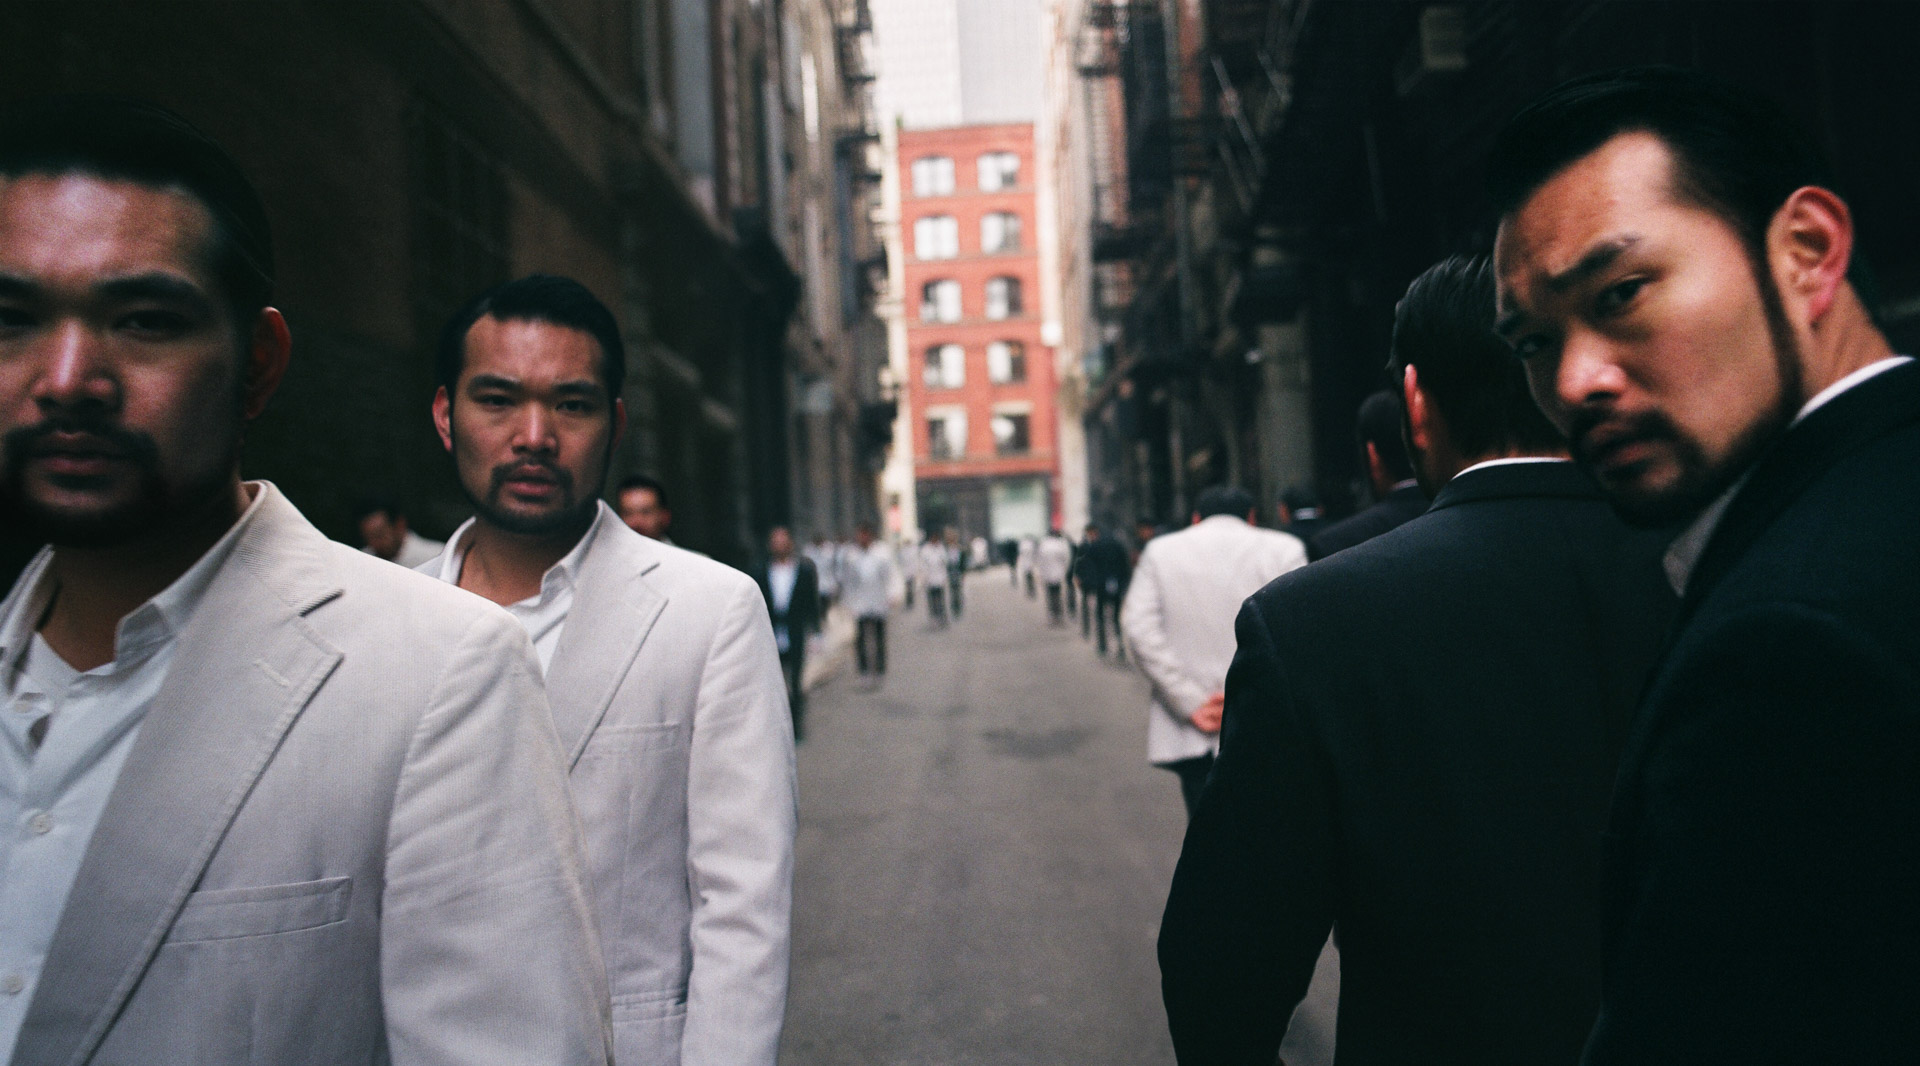 a group of asians in white and black suits walking towards and away from the camera.